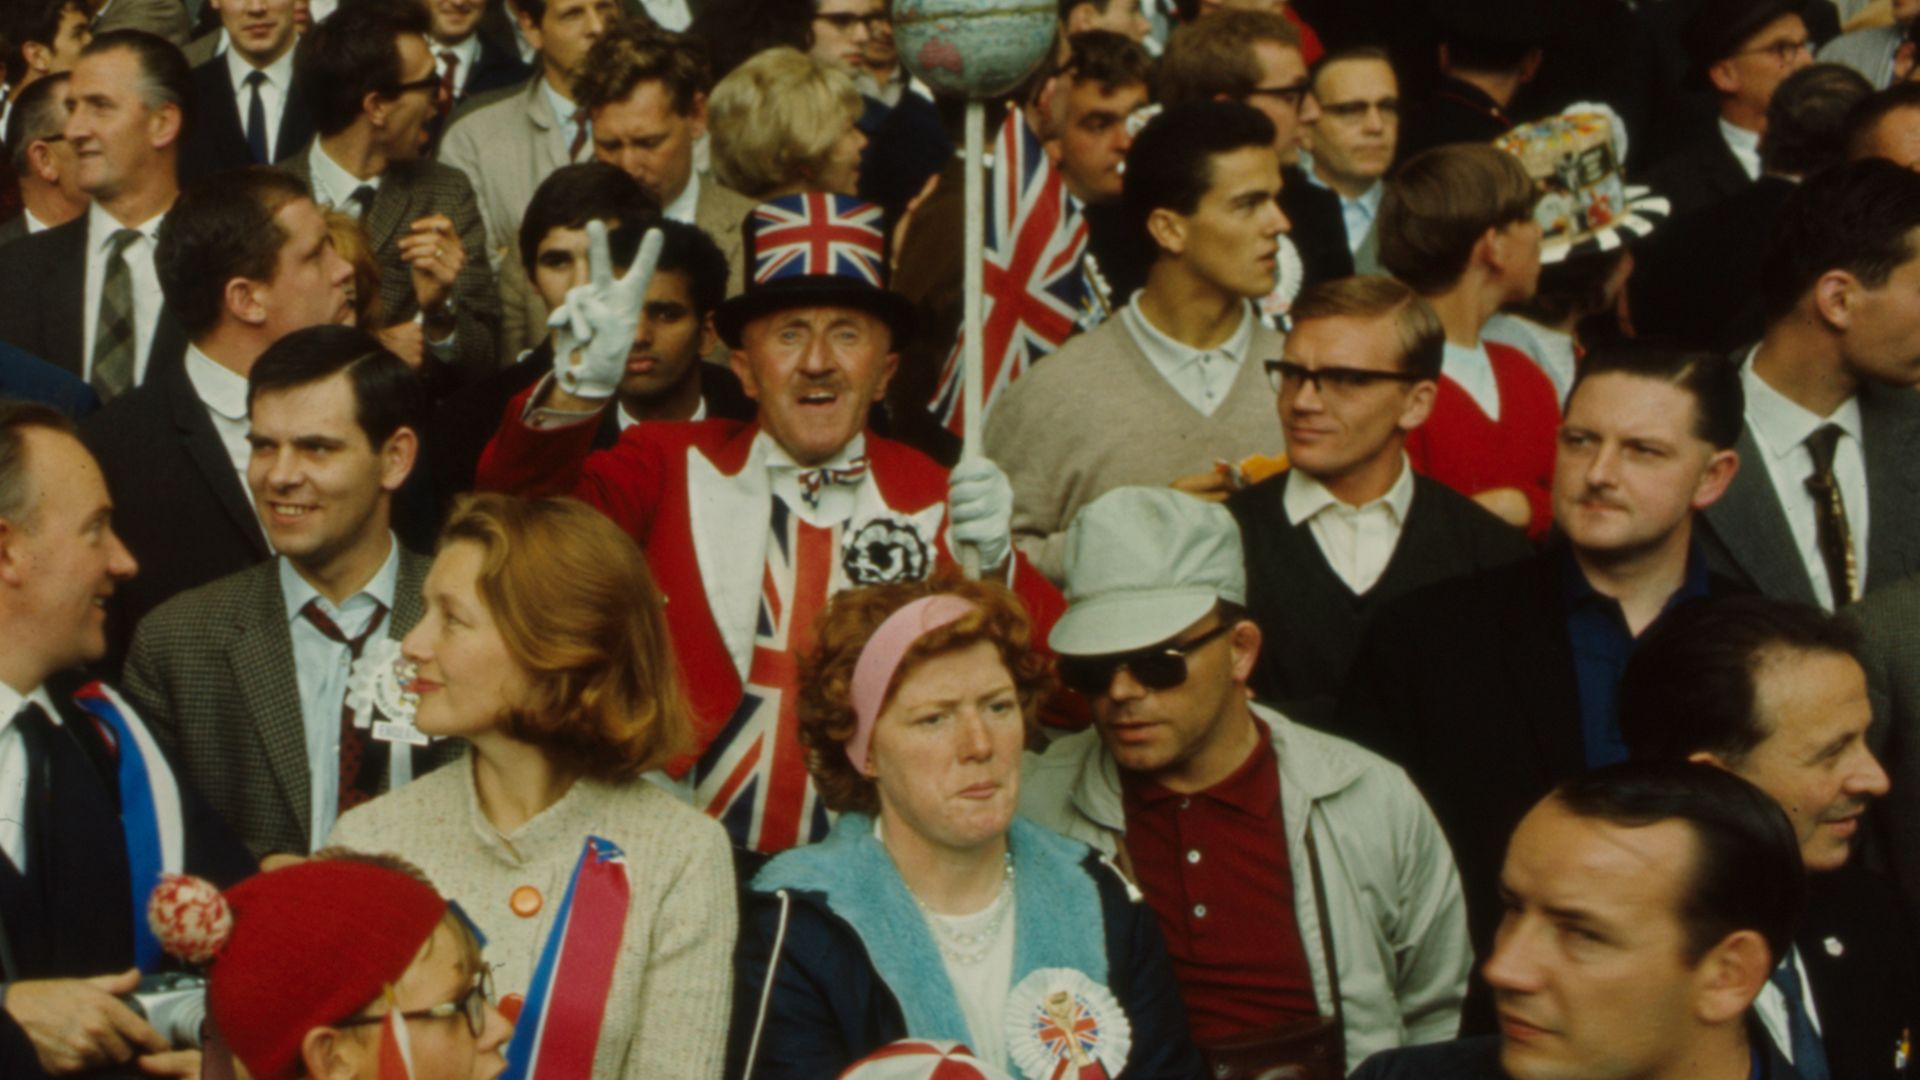 UNITED CHAMPIONS: Union flags aplenty amid England fans at Wembley during the 1966 World Cup - Credit: Getty Images